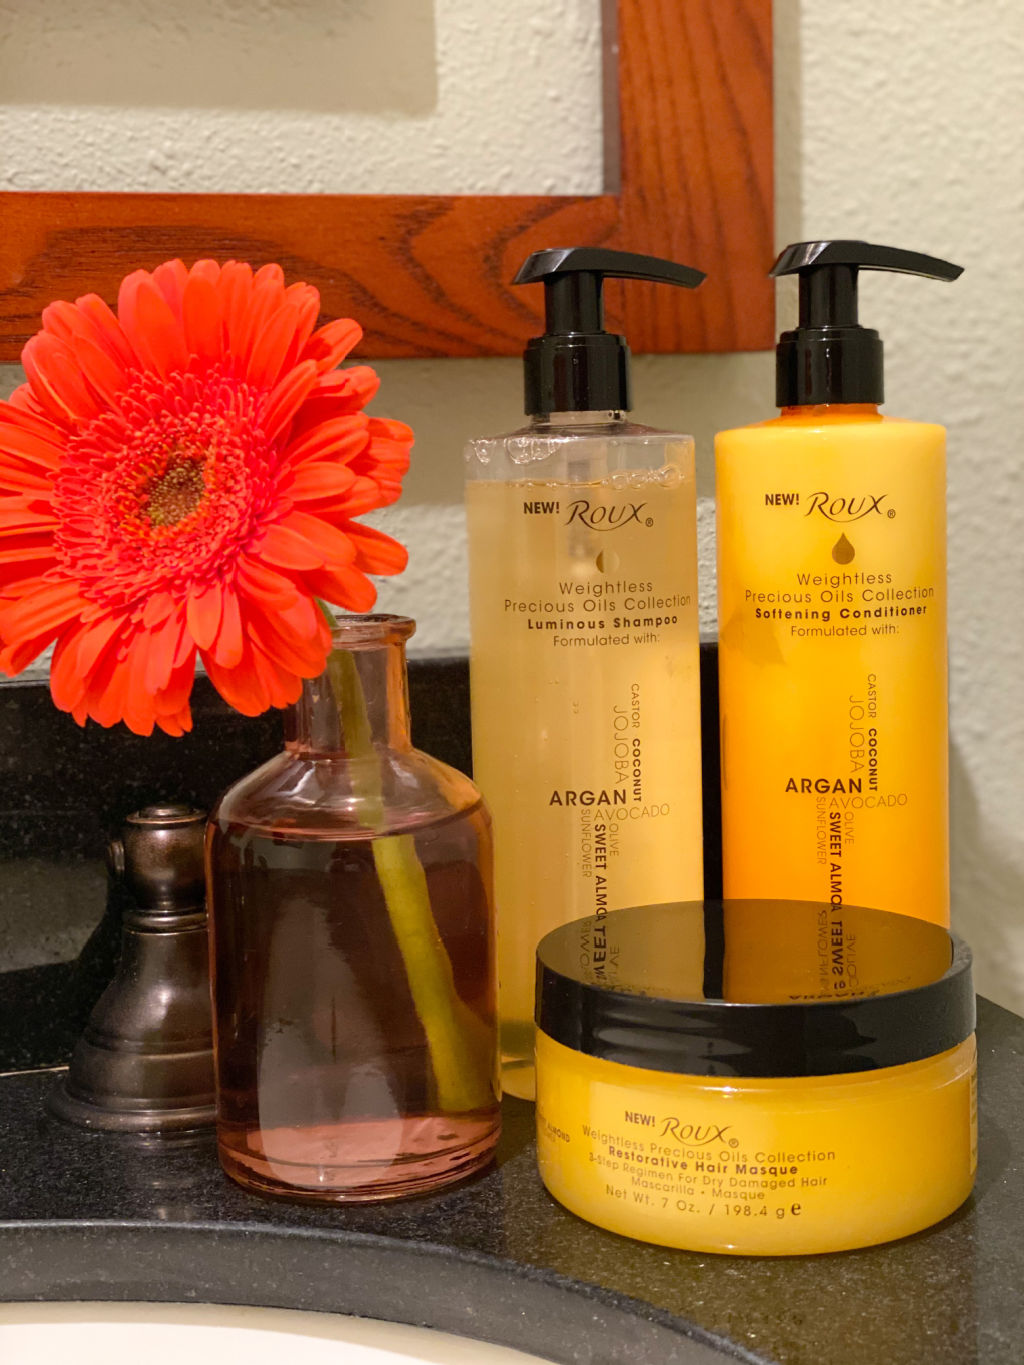 yellow shampoo, conditioner and hair masque bottles with black caps on black counter next to pink vase and orange daisy